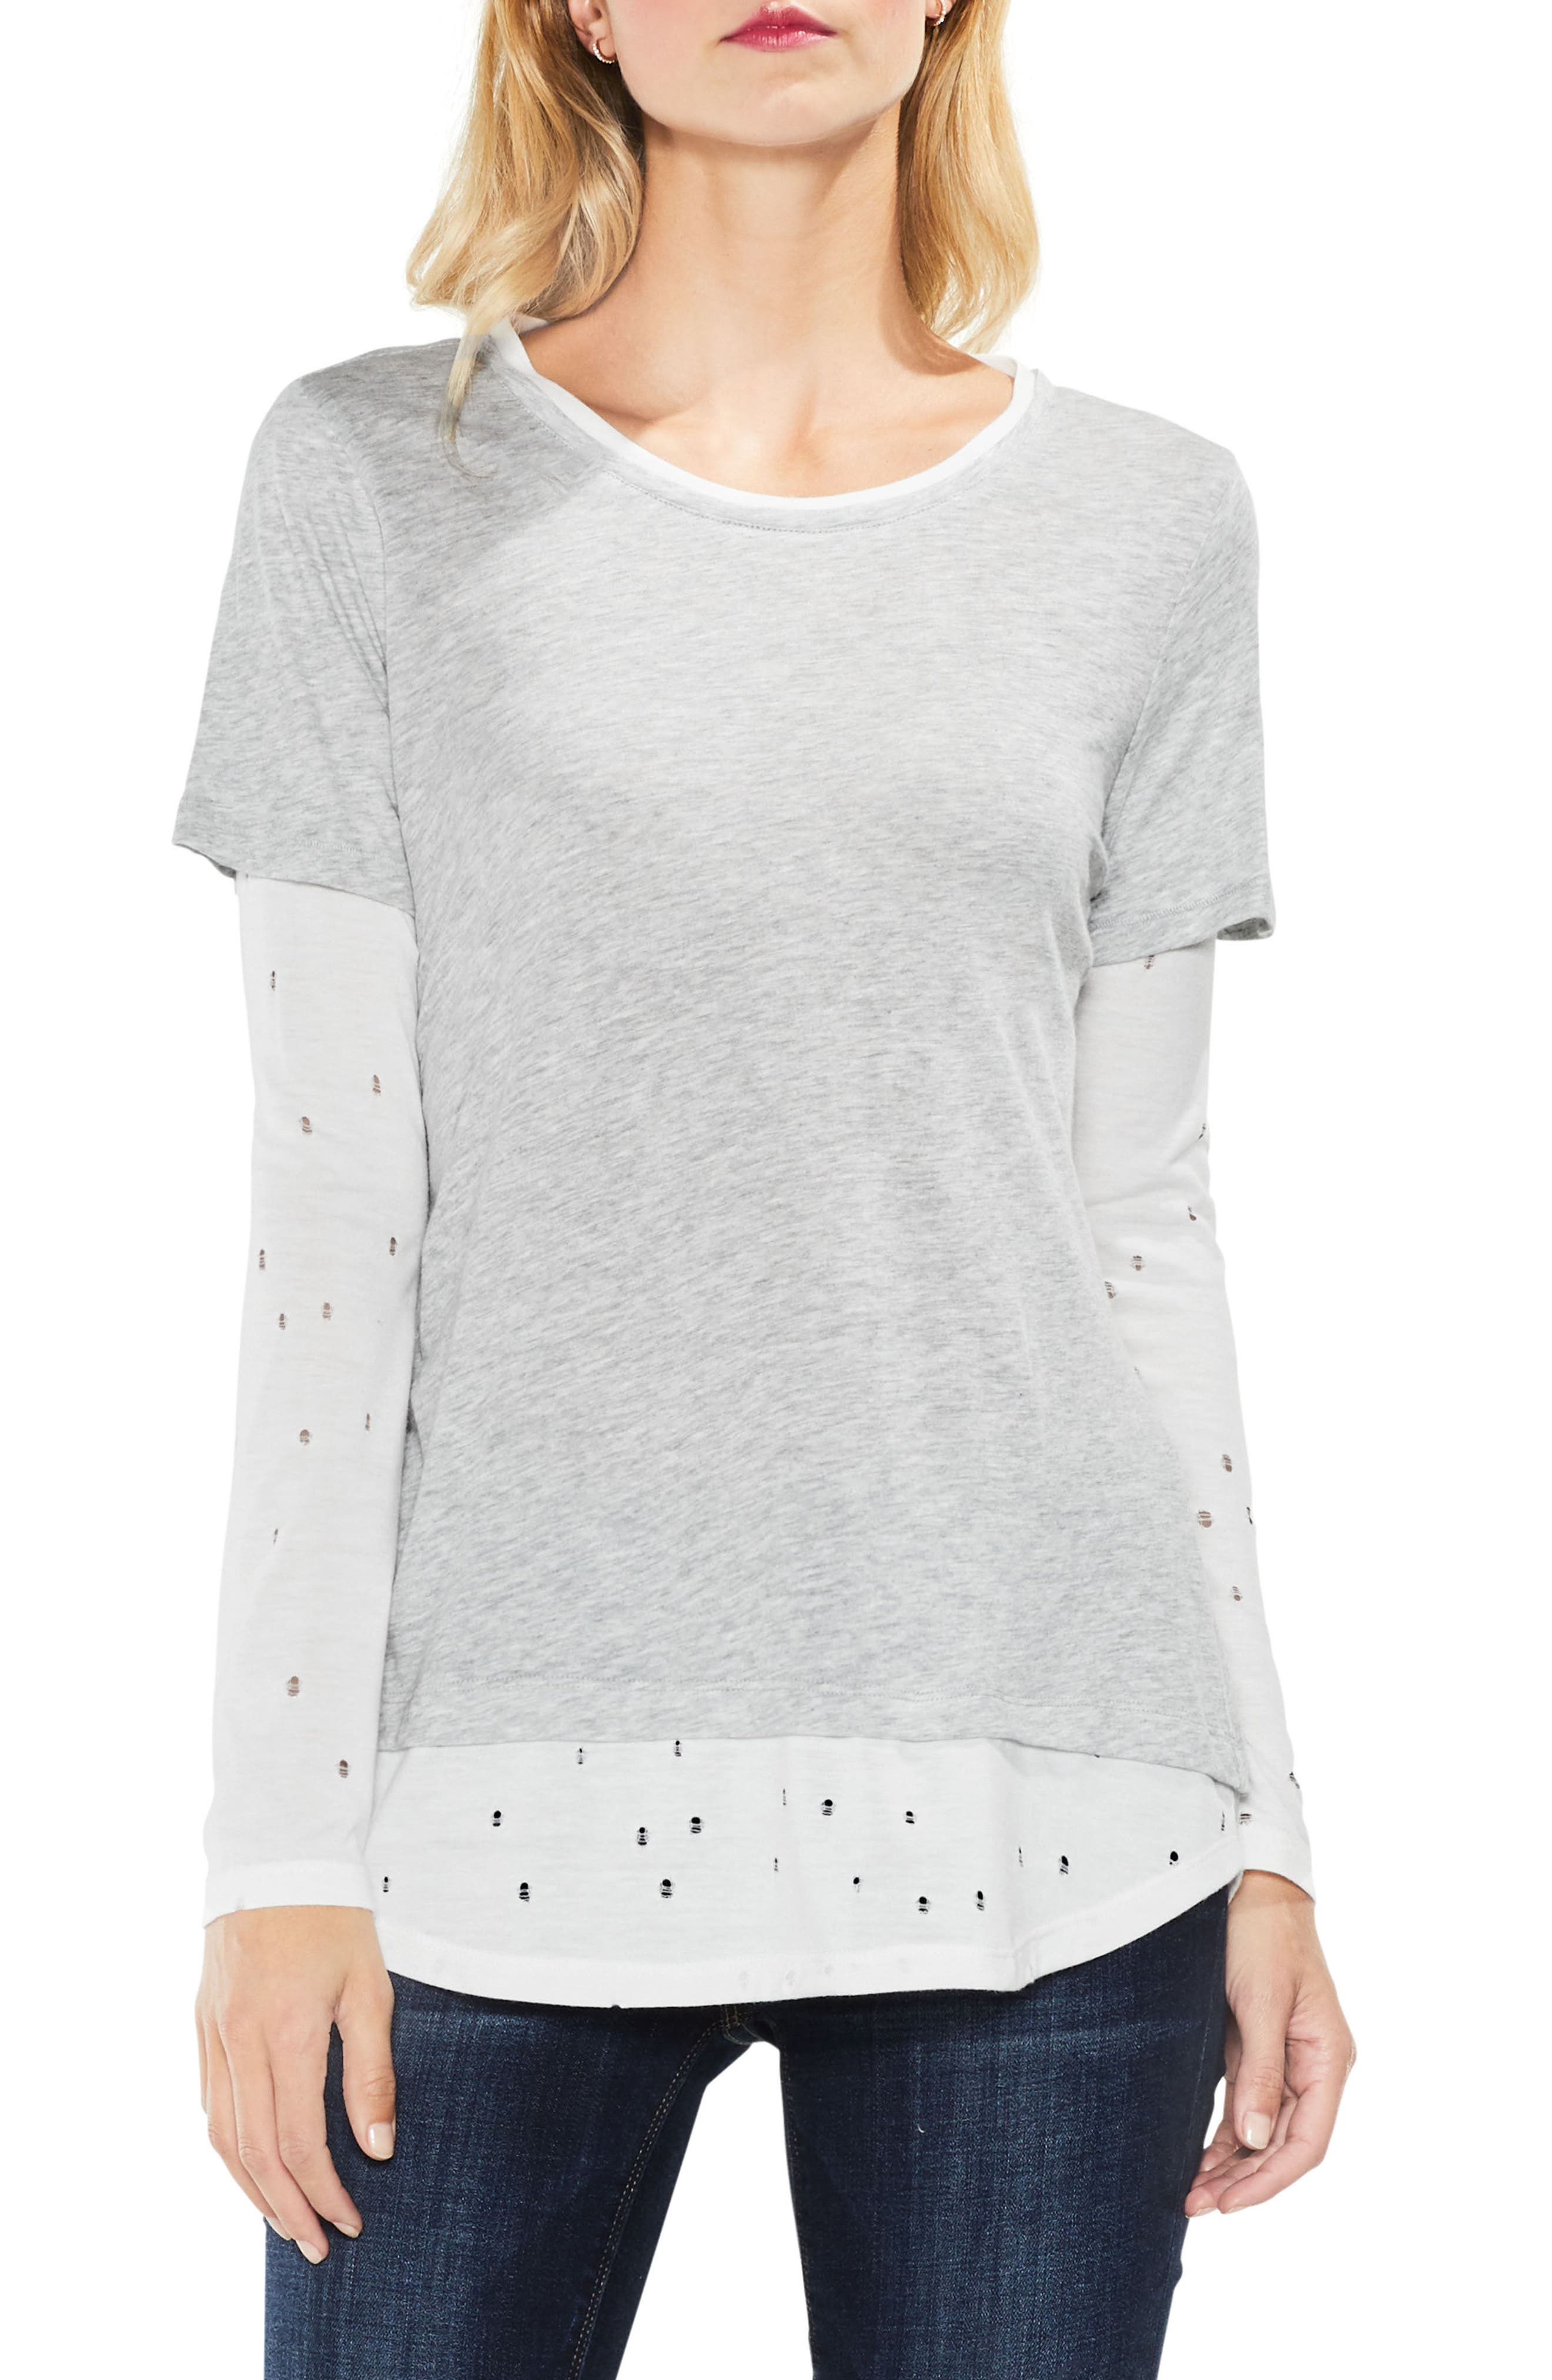 Distressed Mix Media Top,                         Main,                         color, Grey Heather